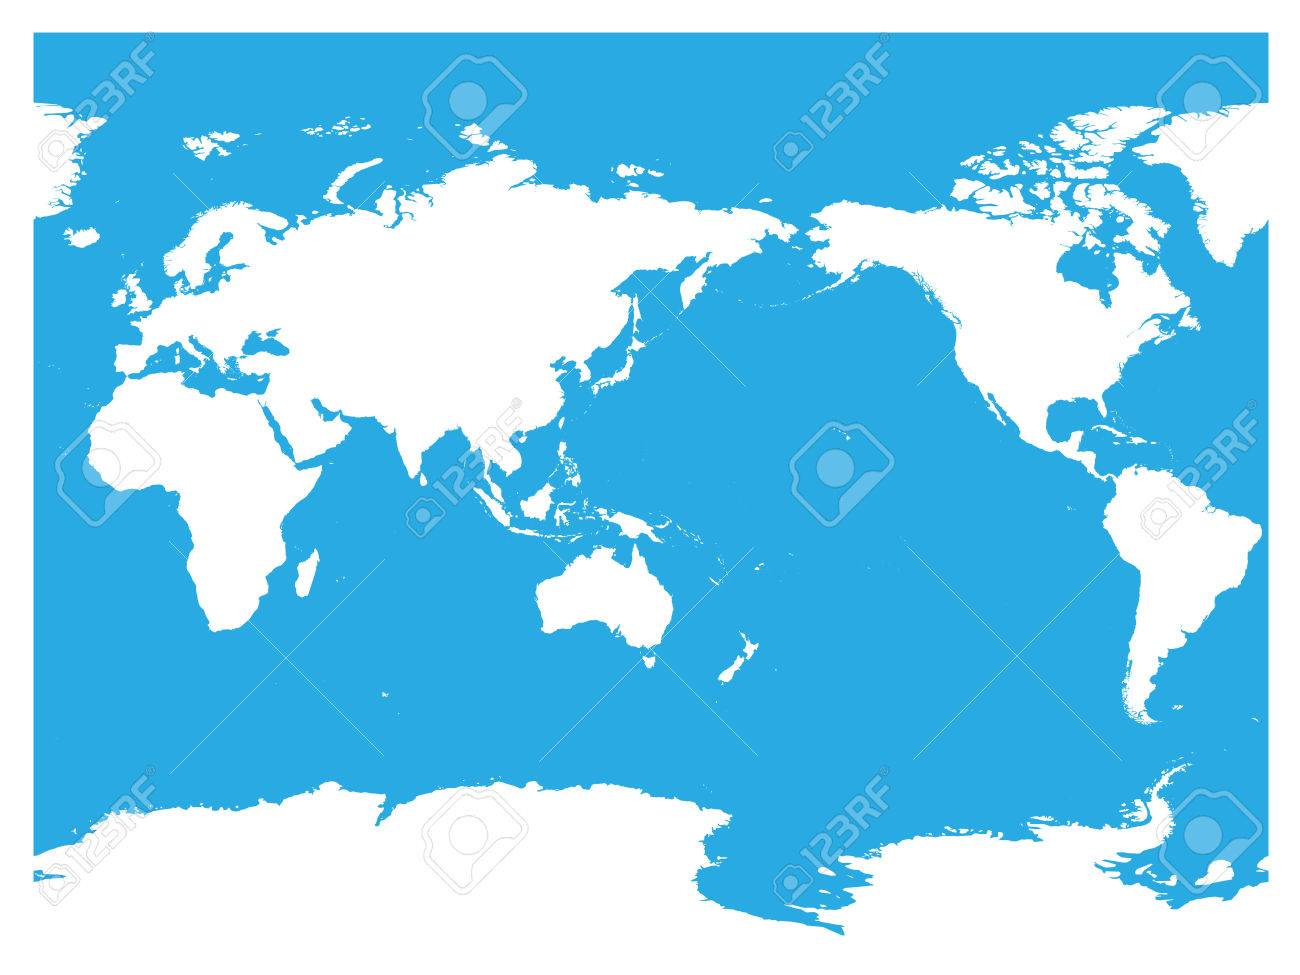 australia and pacific ocean centered world map high detail white silhouette on blue background